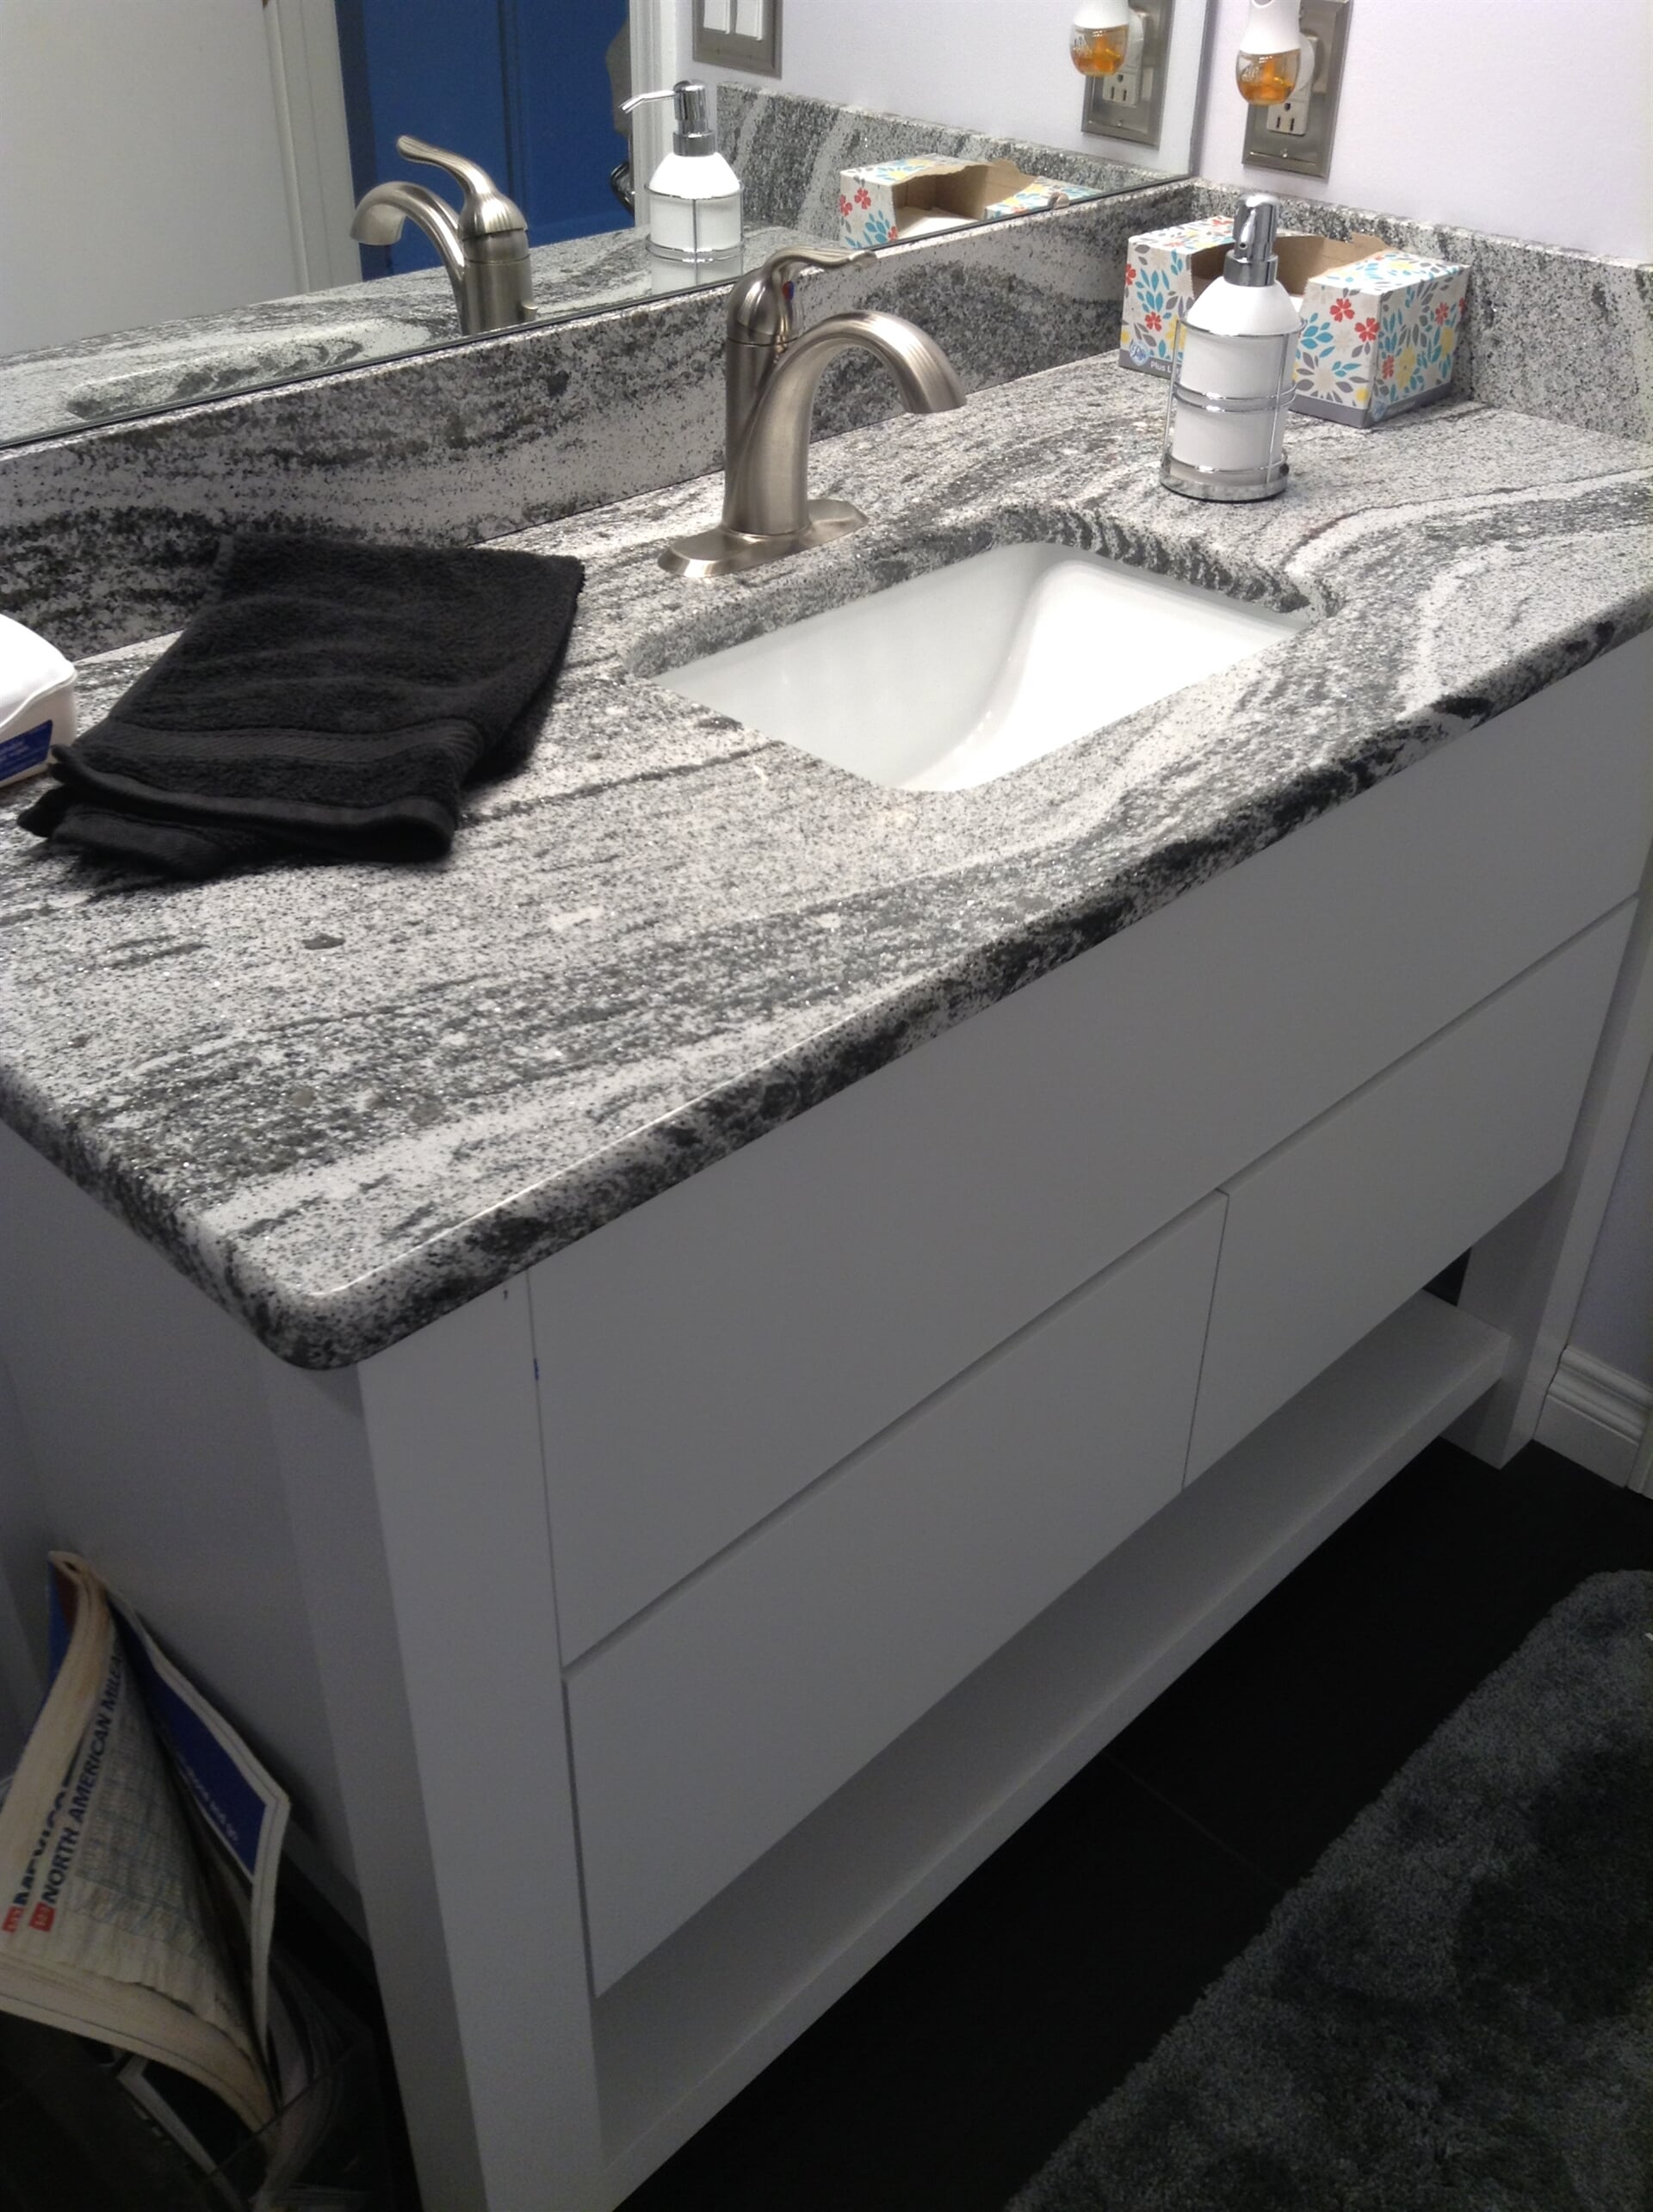 Bathroom remodel with granite countertop in Dundee, MI